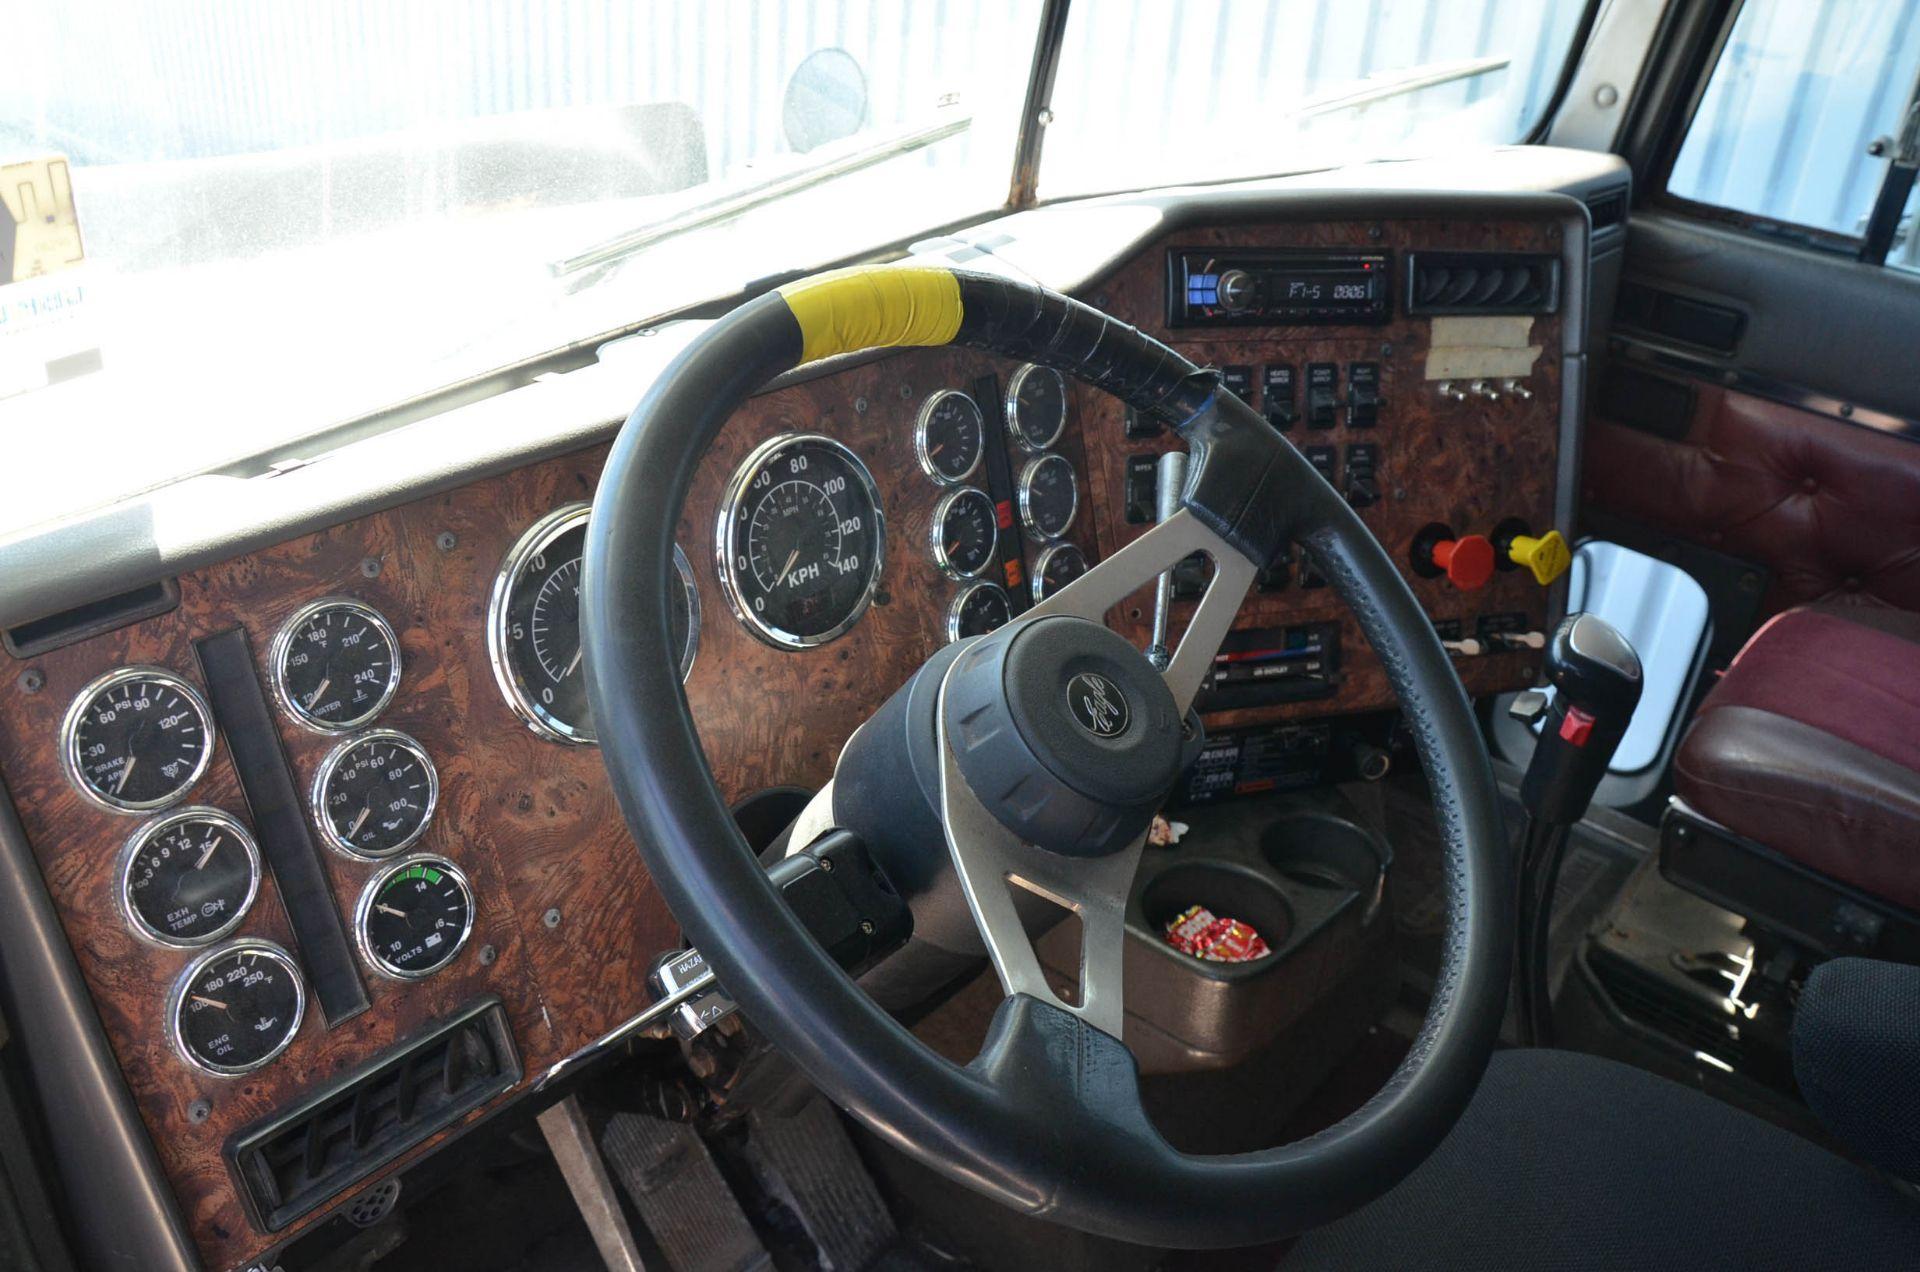 INTERNATIONAL 9200 6X4 TANDEM AXLE SEMI-TRACTOR TRUCK WITH . ENGINE, EATON-FULLER 13 SPEED MANUAL - Image 13 of 18